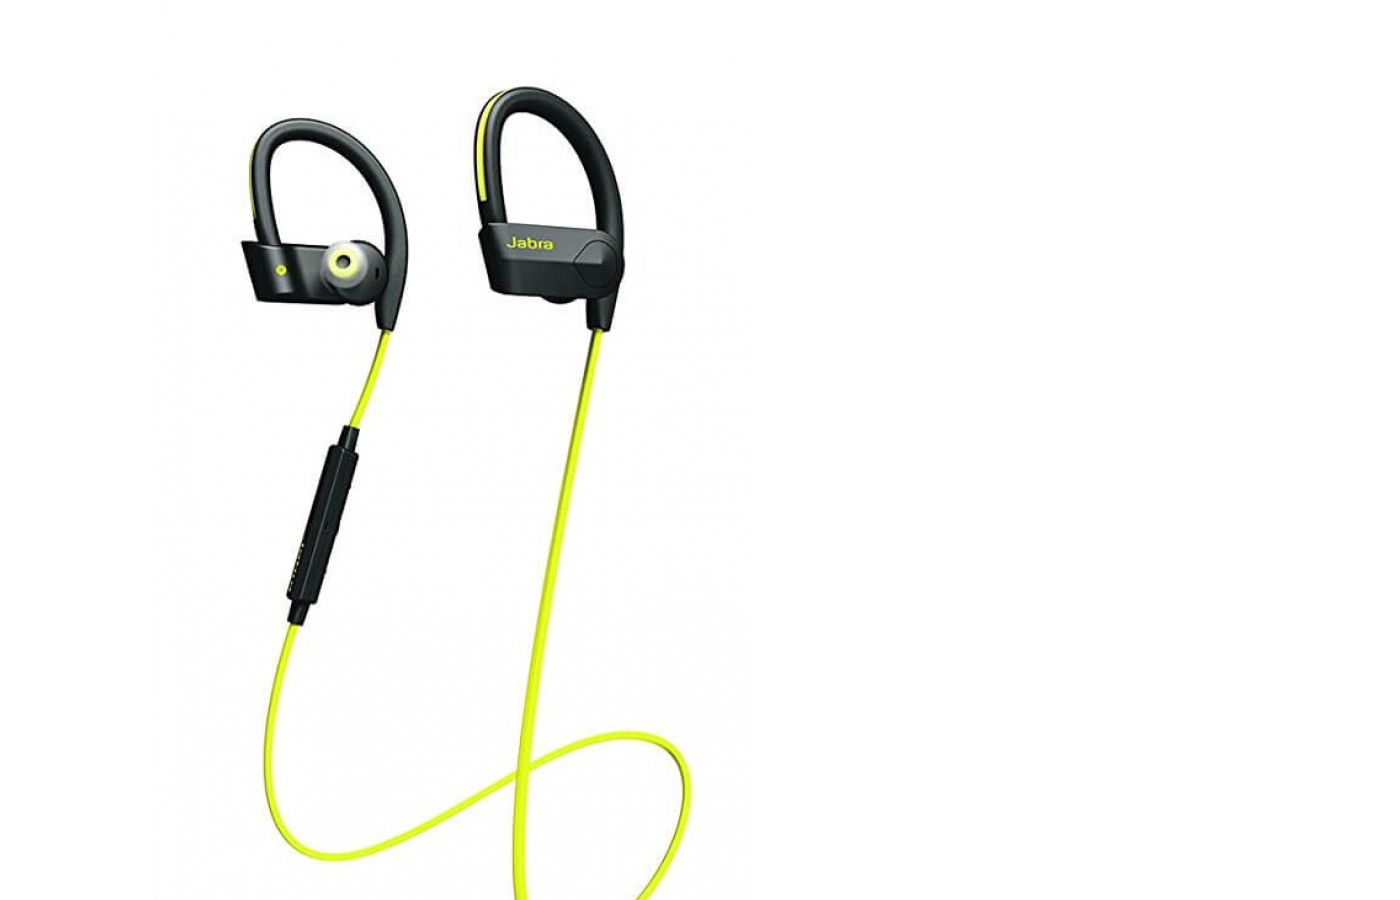 low priced 4d6c9 7a9f2 Jabra Sport Pace Reviewed - To Buy or Not in Aug 2019?